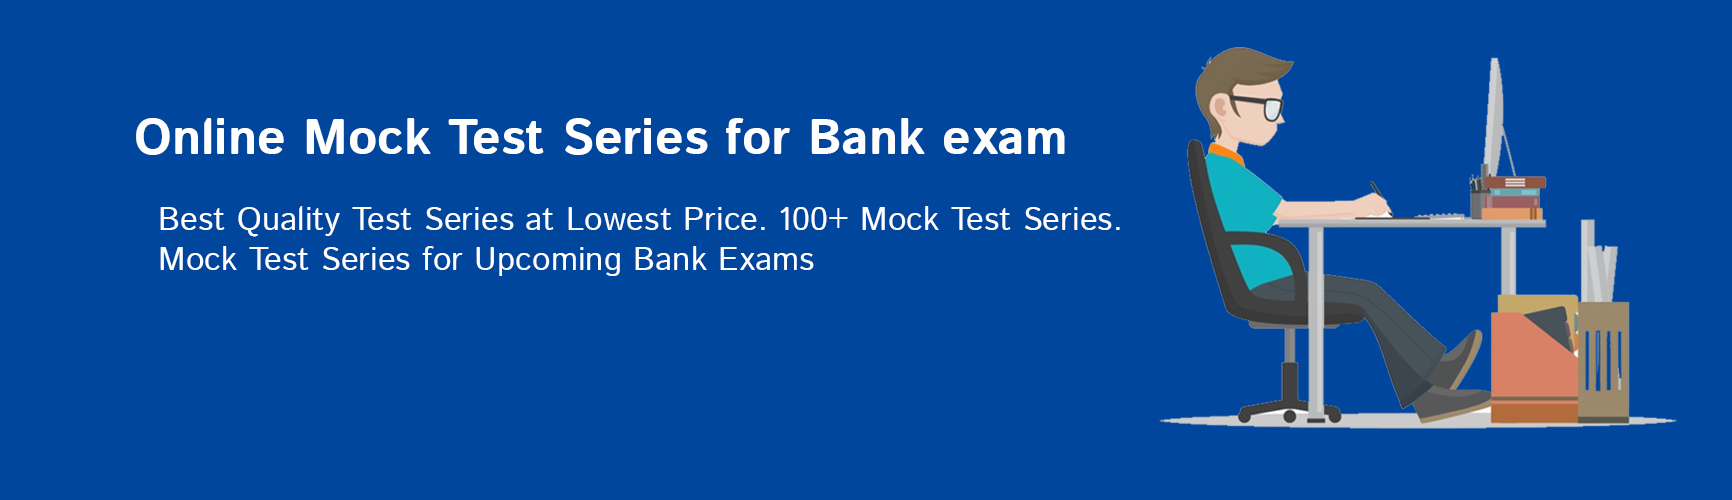 Best Mock Test Series for all Bank Exams,Chennai,Tamilnadu,India.